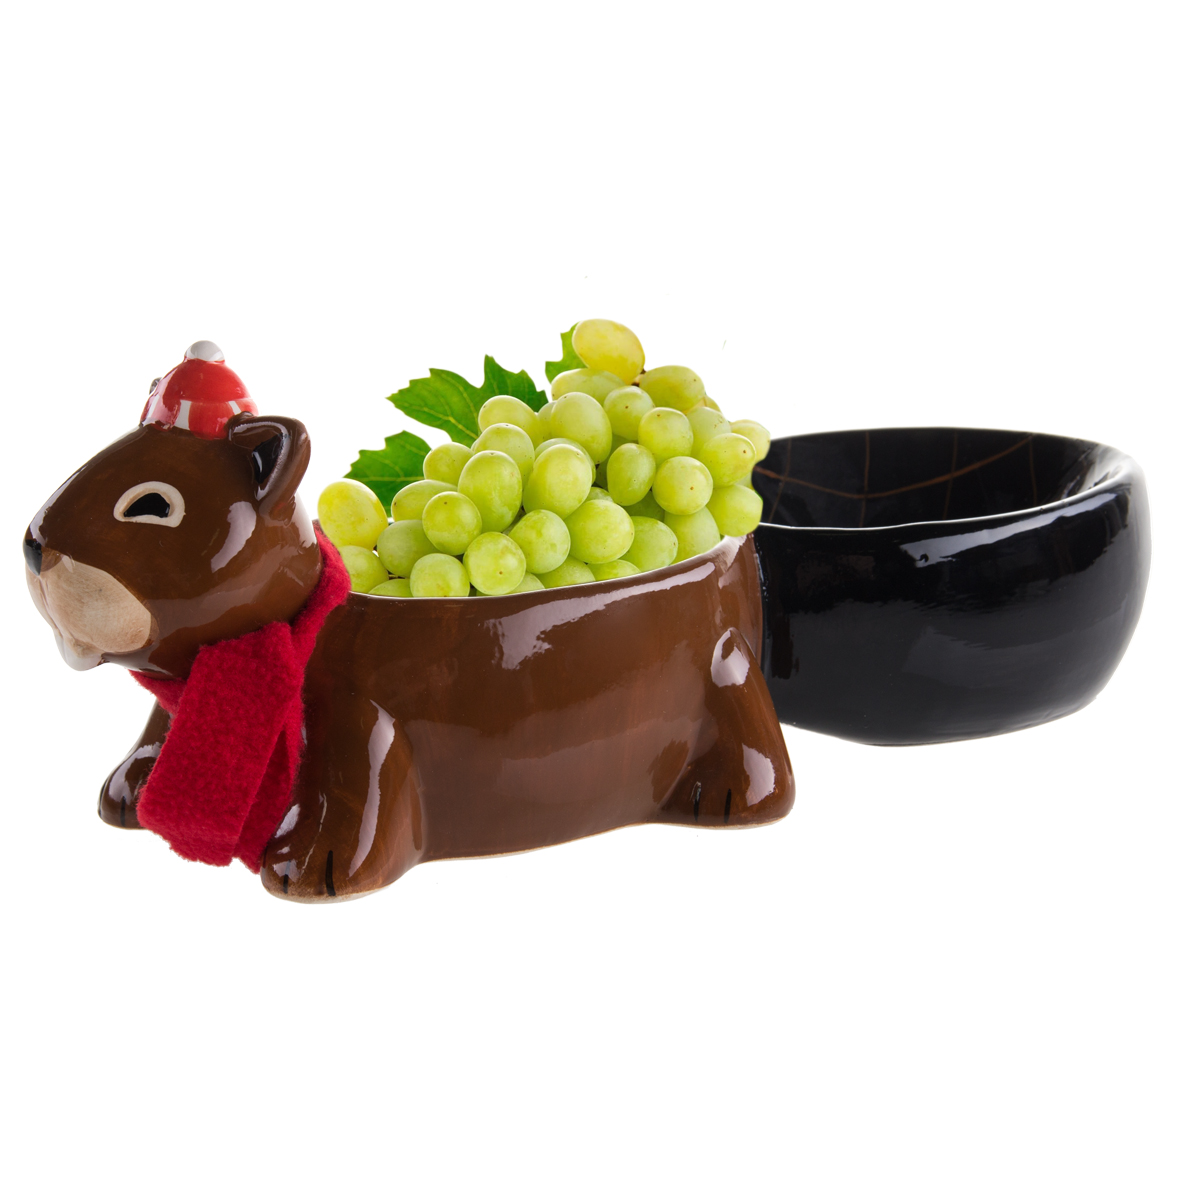 Ceramic Busy Beaver Dish Appetizer Serving Bowl 2-Compartments Party Snack Tray by